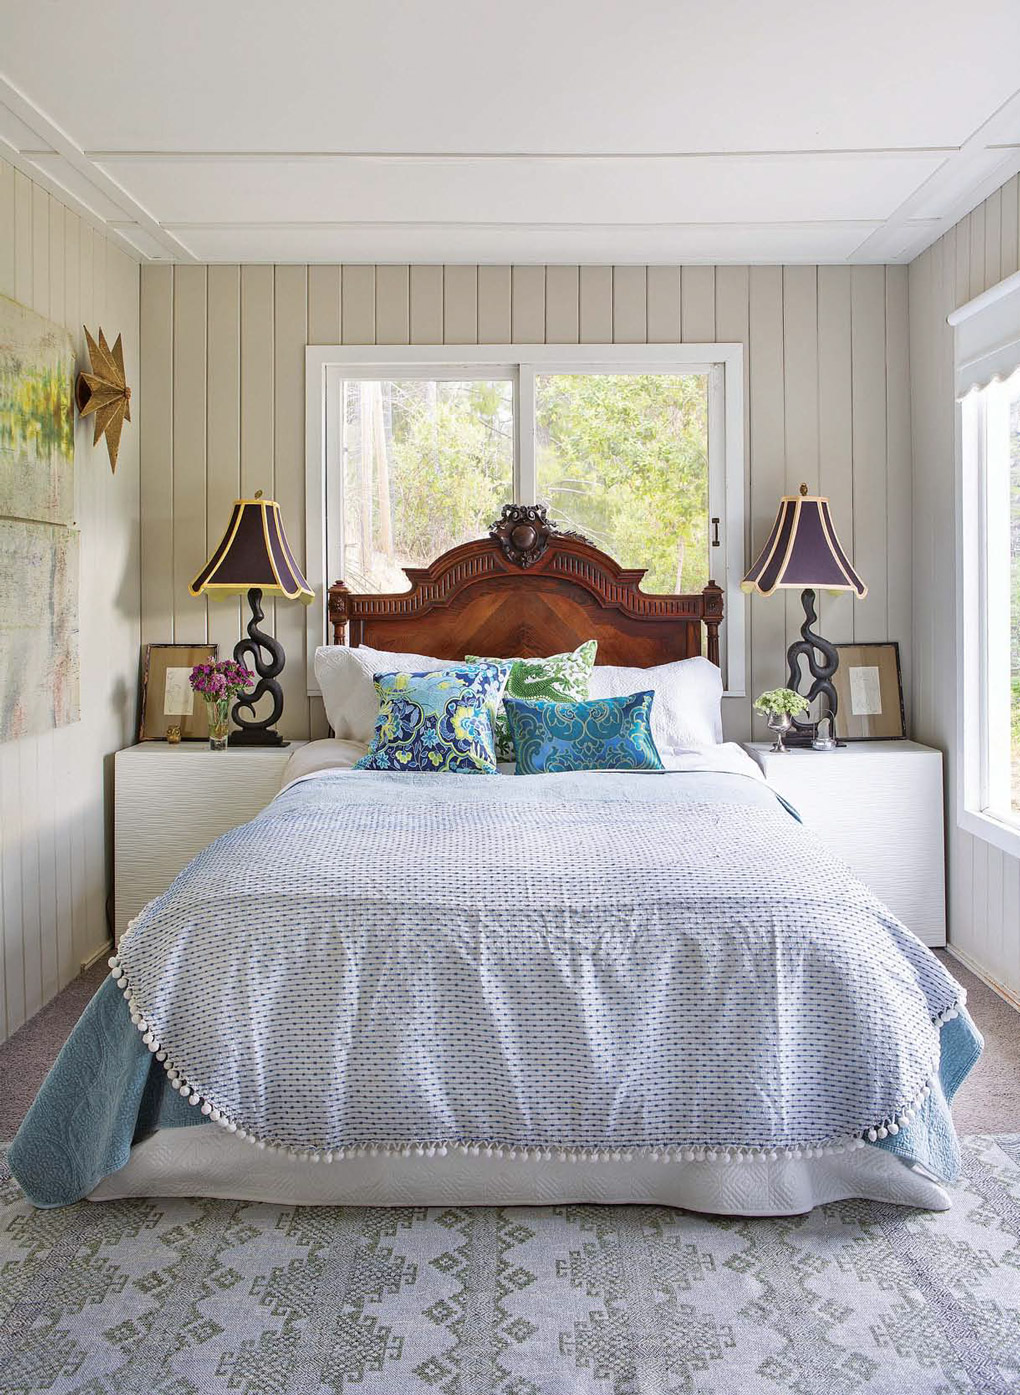 Master bedroom with 1940s vintage millwork around the walls and ceiling, light blue bedding and snake andirons turned lamps on the bedside tables.